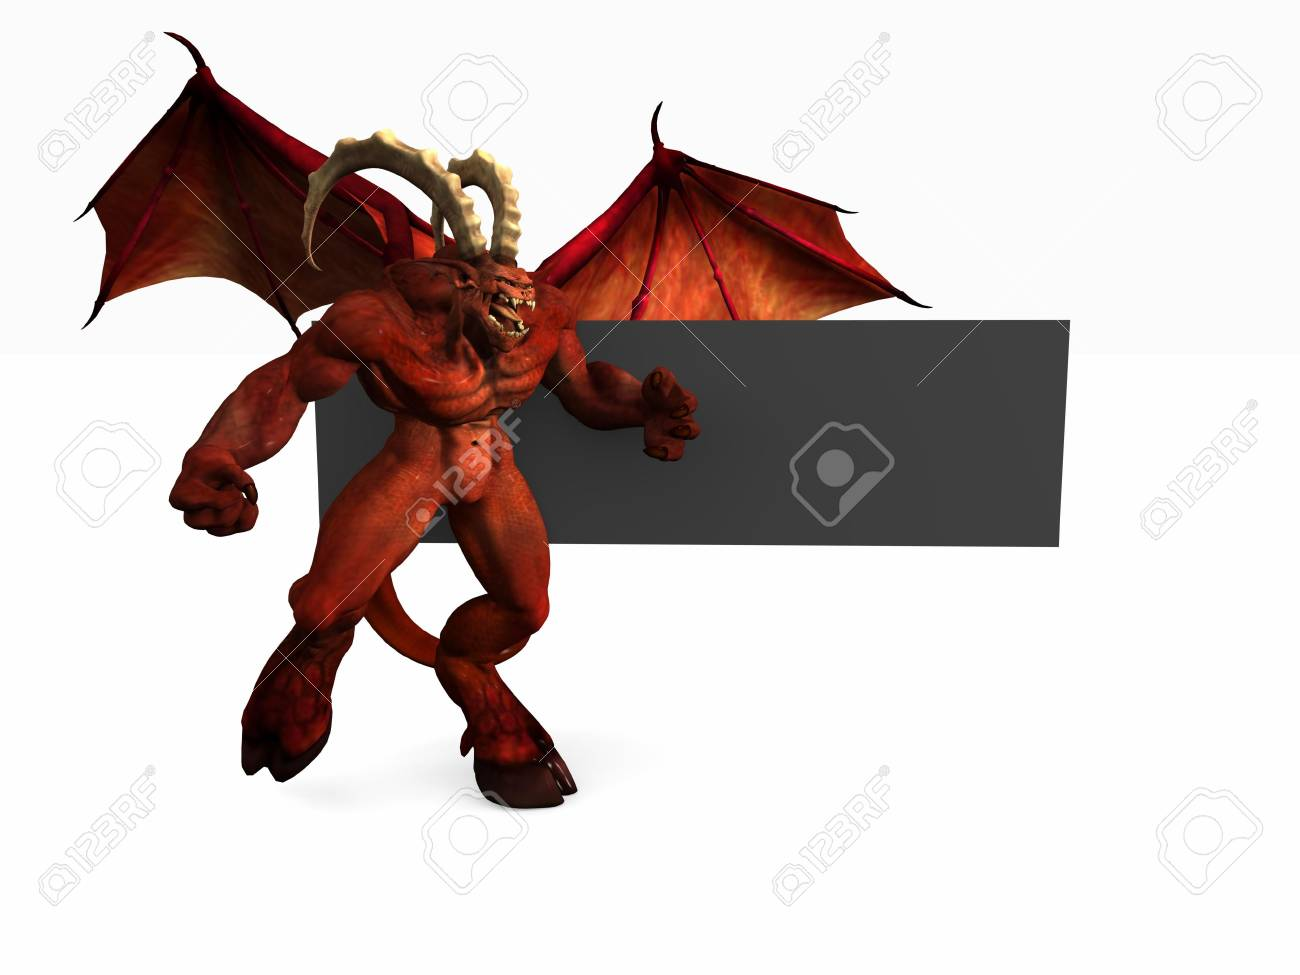 demon and banner Stock Photo - 4535995